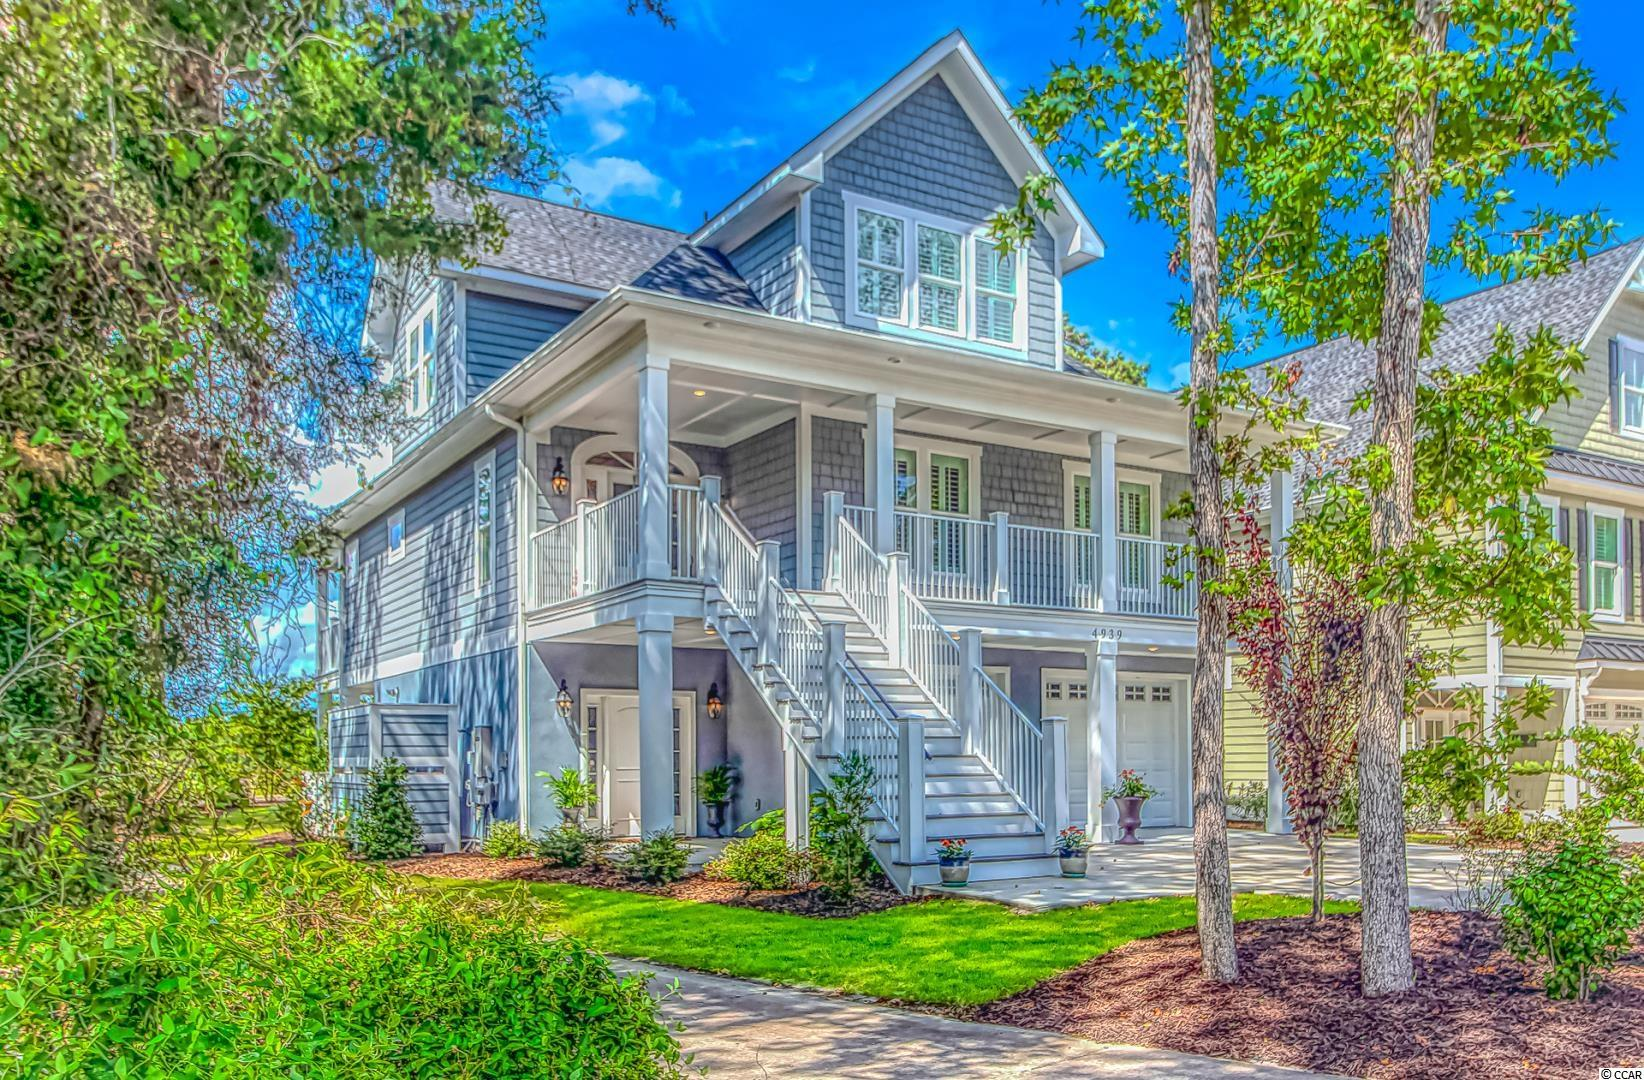 """The FINEST of taste describes this Raised Beach home nestled in the tranquility of Tidewater Plantation. Custom built in 2019, this newer home is offered FULLY FURNISHED. Three floors of showcase furnishings all purchased new when the home was built. Open floor plan allows not only an abundance of natural light but the breathtaking views of the Intercoastal Waterway. Whole house stand out features include Plantation shutters, Rinnai TANKLESS water heater, WHOLE HOUSE GENERATOR, surround sound speakers thru out. Recessed lighting and PLANK TILE  beautifully accents the designer style decor. Lower floor entry invites you in with a mud area that includes built in cubbies with plenty of storage. Extra square footage was added in construction to the lower level to allow for versatility in function.  Two additional storage closets, laundry sink, built in ice maker and 2nd refrigerator will complement any use of this space. Slider door on lower floor opens to outdoor entertaining.....gas grill with attached refrigerator, plenty of space for seating , 3 ceiling fans, etc. perched on the 8th TEE BOX of Tidewater Golf Course.  Main living area opens with foyer and half bath...built-ins in LR surround the TRAVERTINE FIREPLACE with 70"""" flat screen and a Linear remote gas fireplace with color changing ambience. Beautiful QUARTZ countertops in kitchen, MARBLE BACKSPLASH w/accent inset over 5 BURNER GAS COOKTOP. Wall oven/microwave, soft close cabinets and """"cabinet drawers"""", all high end STAINLESS STEEL APPLIANCES w/ CAFE FRENCH DOOR REFRIGERATOR w/ ice maker. Large, walk in pantry. Stunning table and chairs in the Breakfast/DR area that seats 8 people. Bar stools allow for additional and more casual dining. Laundry room- top of the line washer/dryer with cabinets and built in clothes rack- linen closet also located in laundry. Two large bedrooms finish off the main living area- one having an en suite bath. All Bathrooms have QUARTZ COUNTERTOPS. Main living area has its own deck e"""